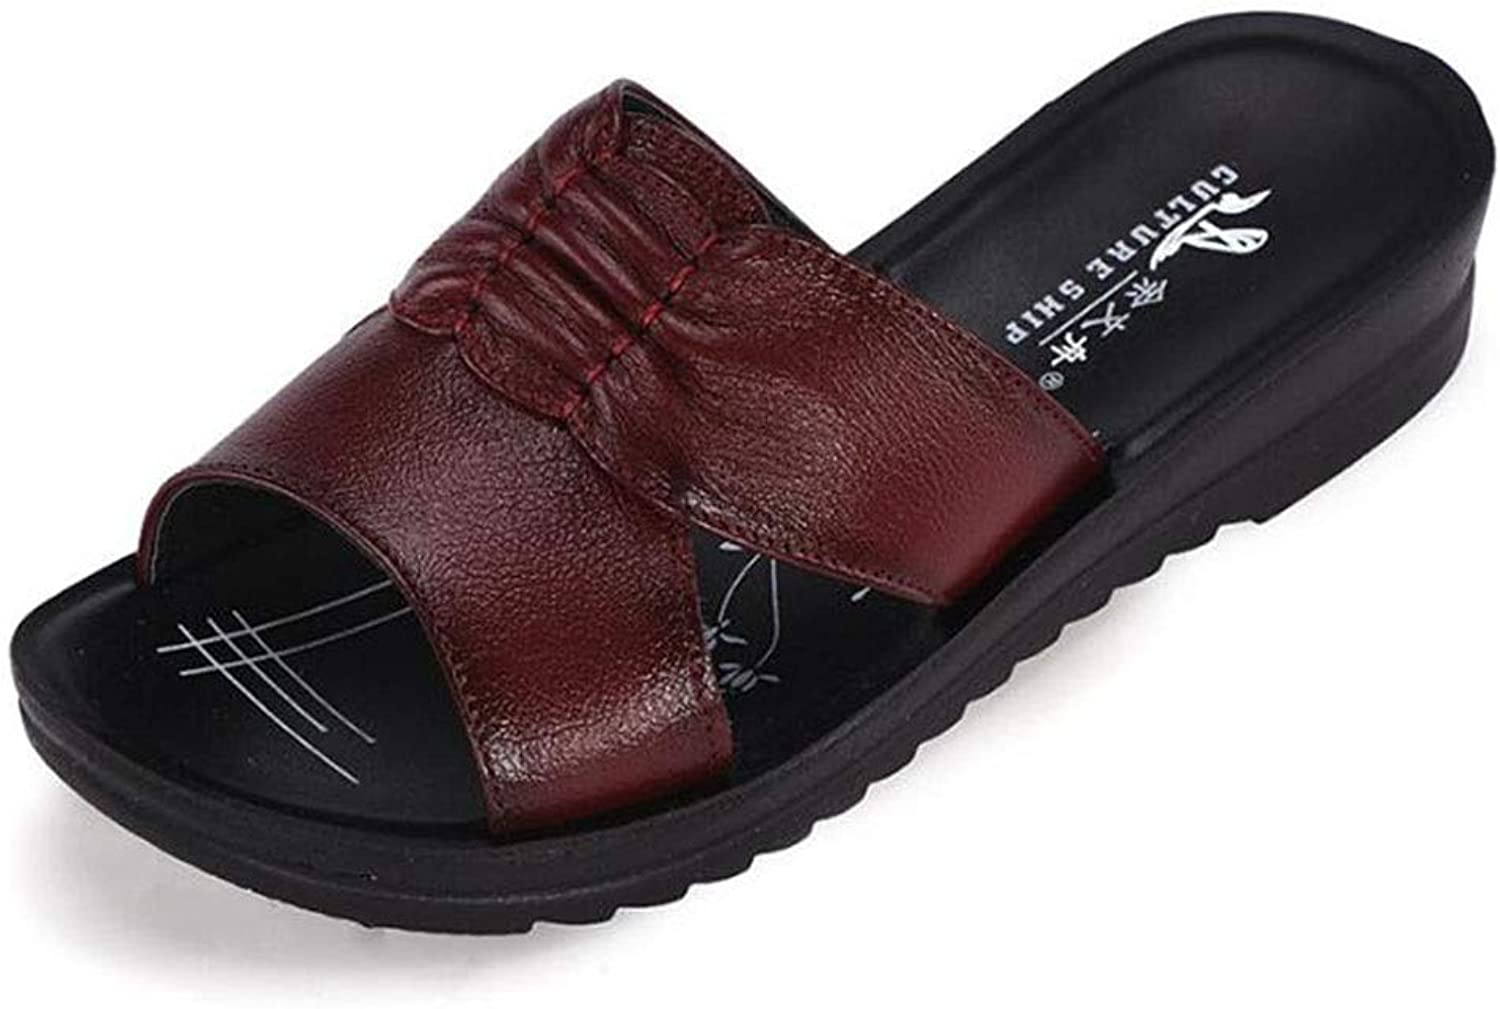 New Women's Sandal Leather Flat Slope with Non-Slip Women's Sandals Casual Large Size Mother Sandals and Slippers Middle-Aged Women's shoes (color   Red, Size   245)